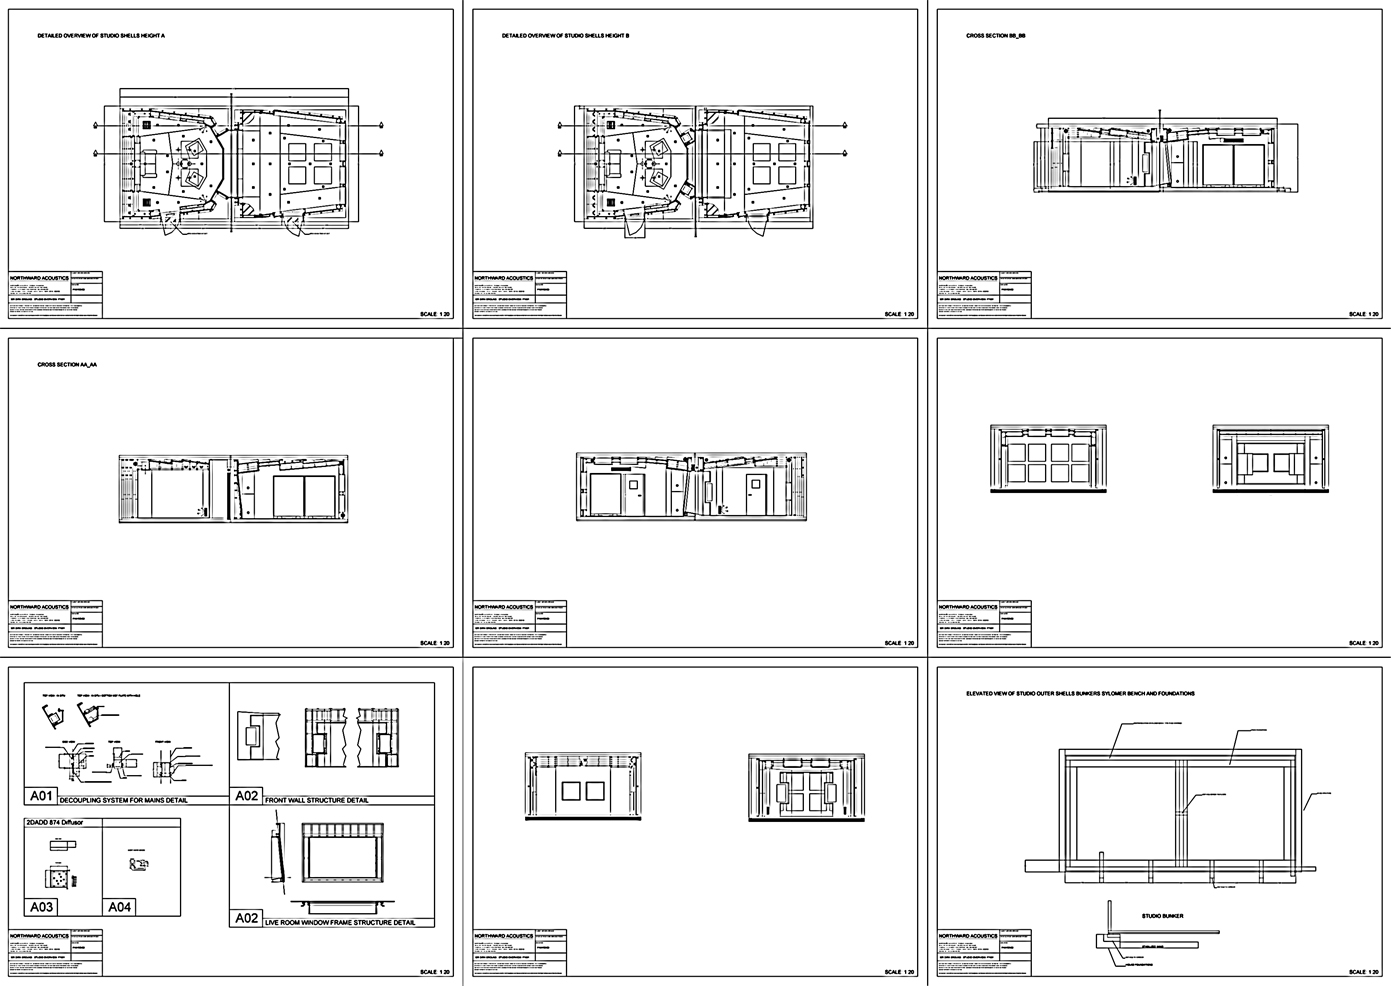 Peachy Building Studio Maasland 2 0 Another Northward Acoustics Design Largest Home Design Picture Inspirations Pitcheantrous